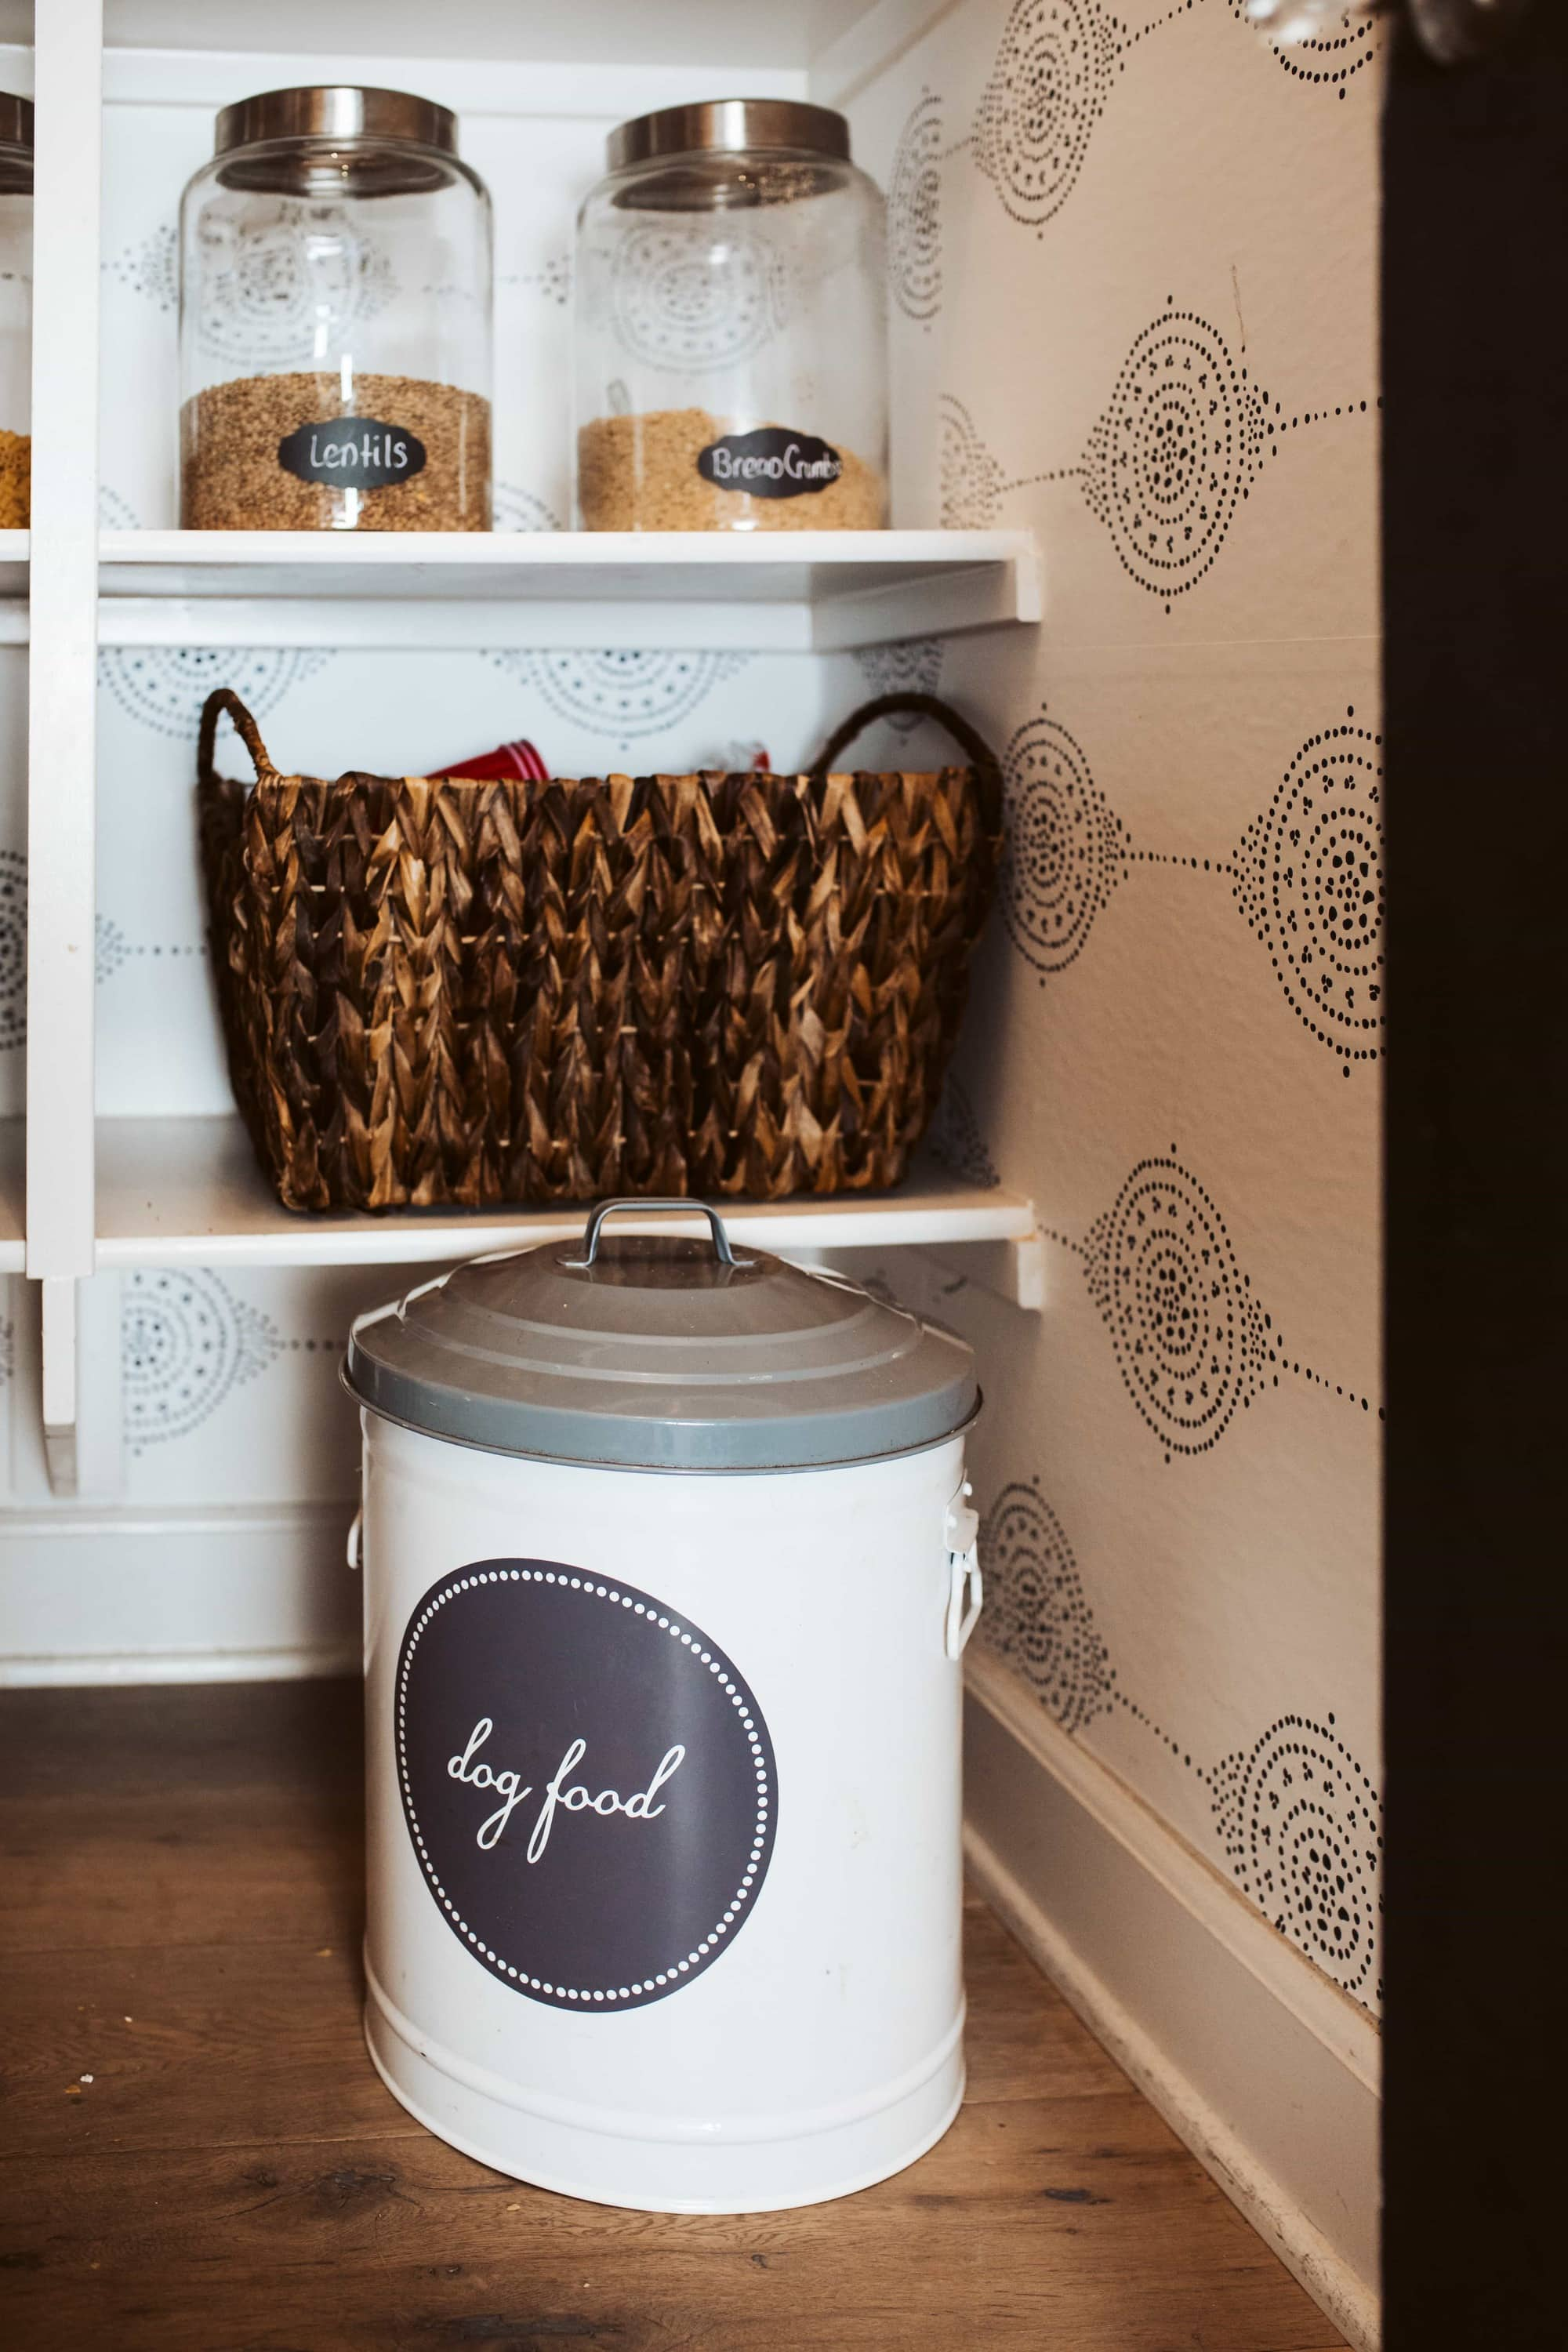 pantry organization with jars and baskets